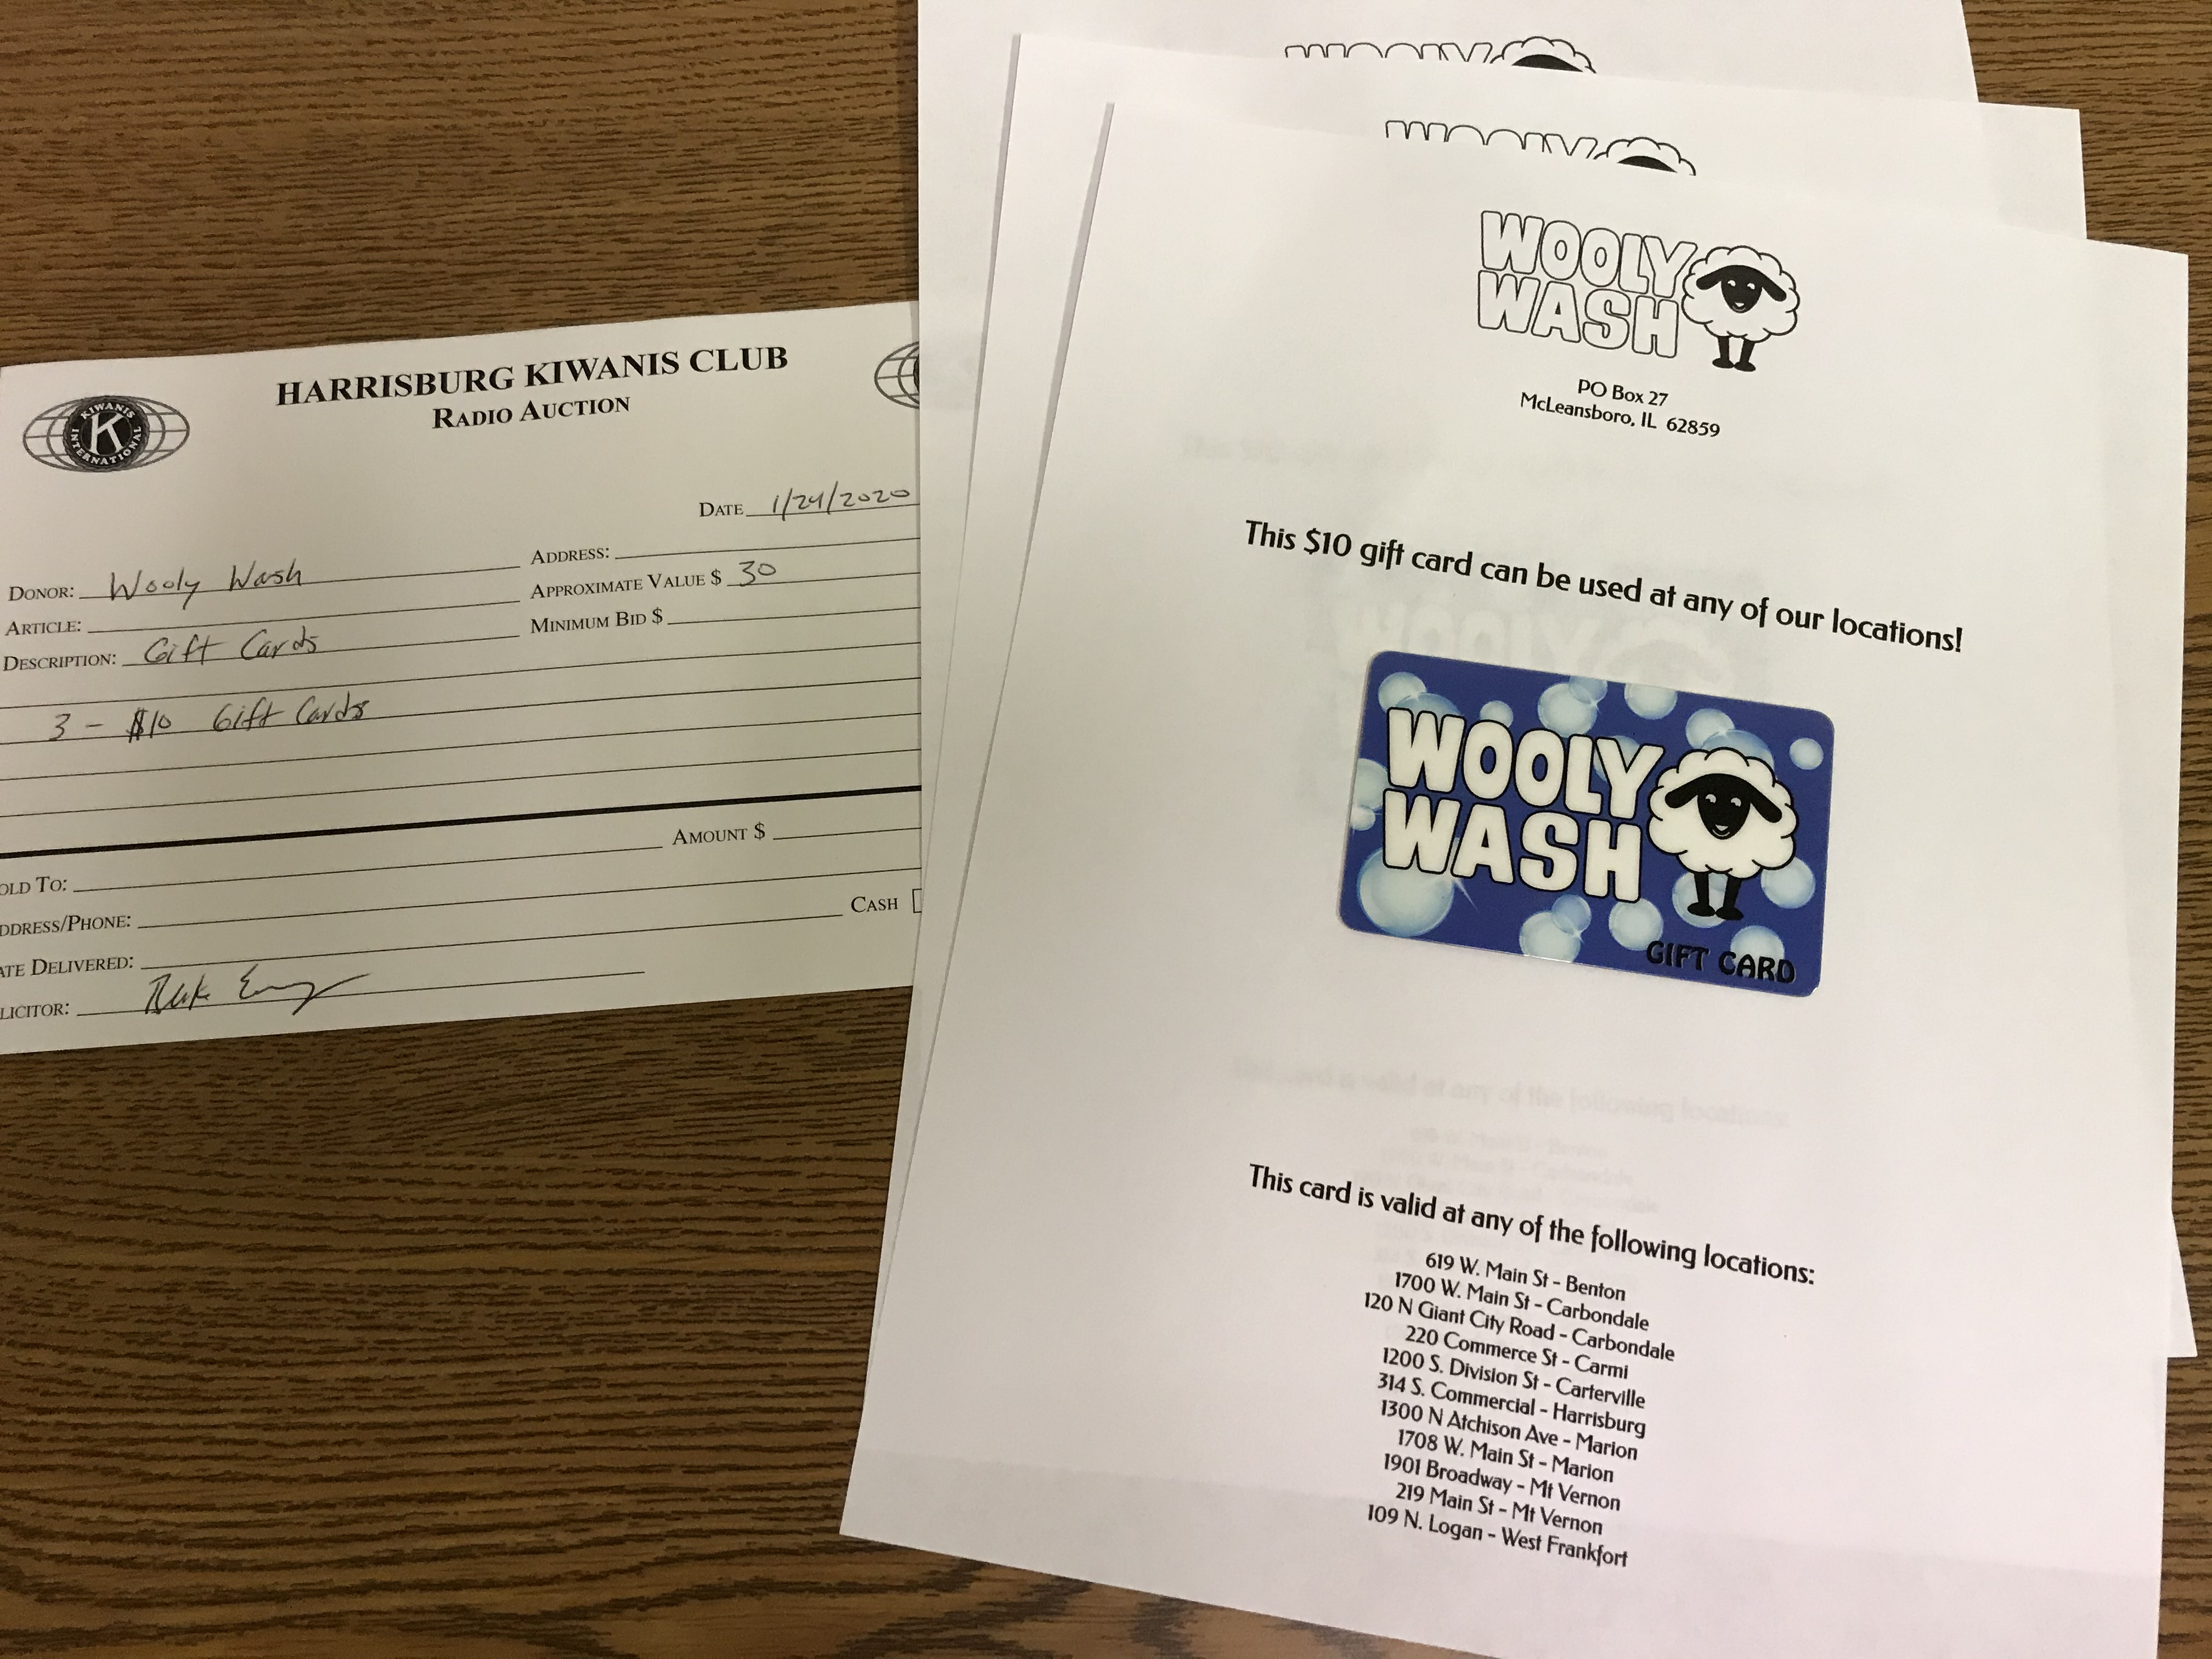 Item 320 - Wooly Wash 3 - $10 Gift Cards